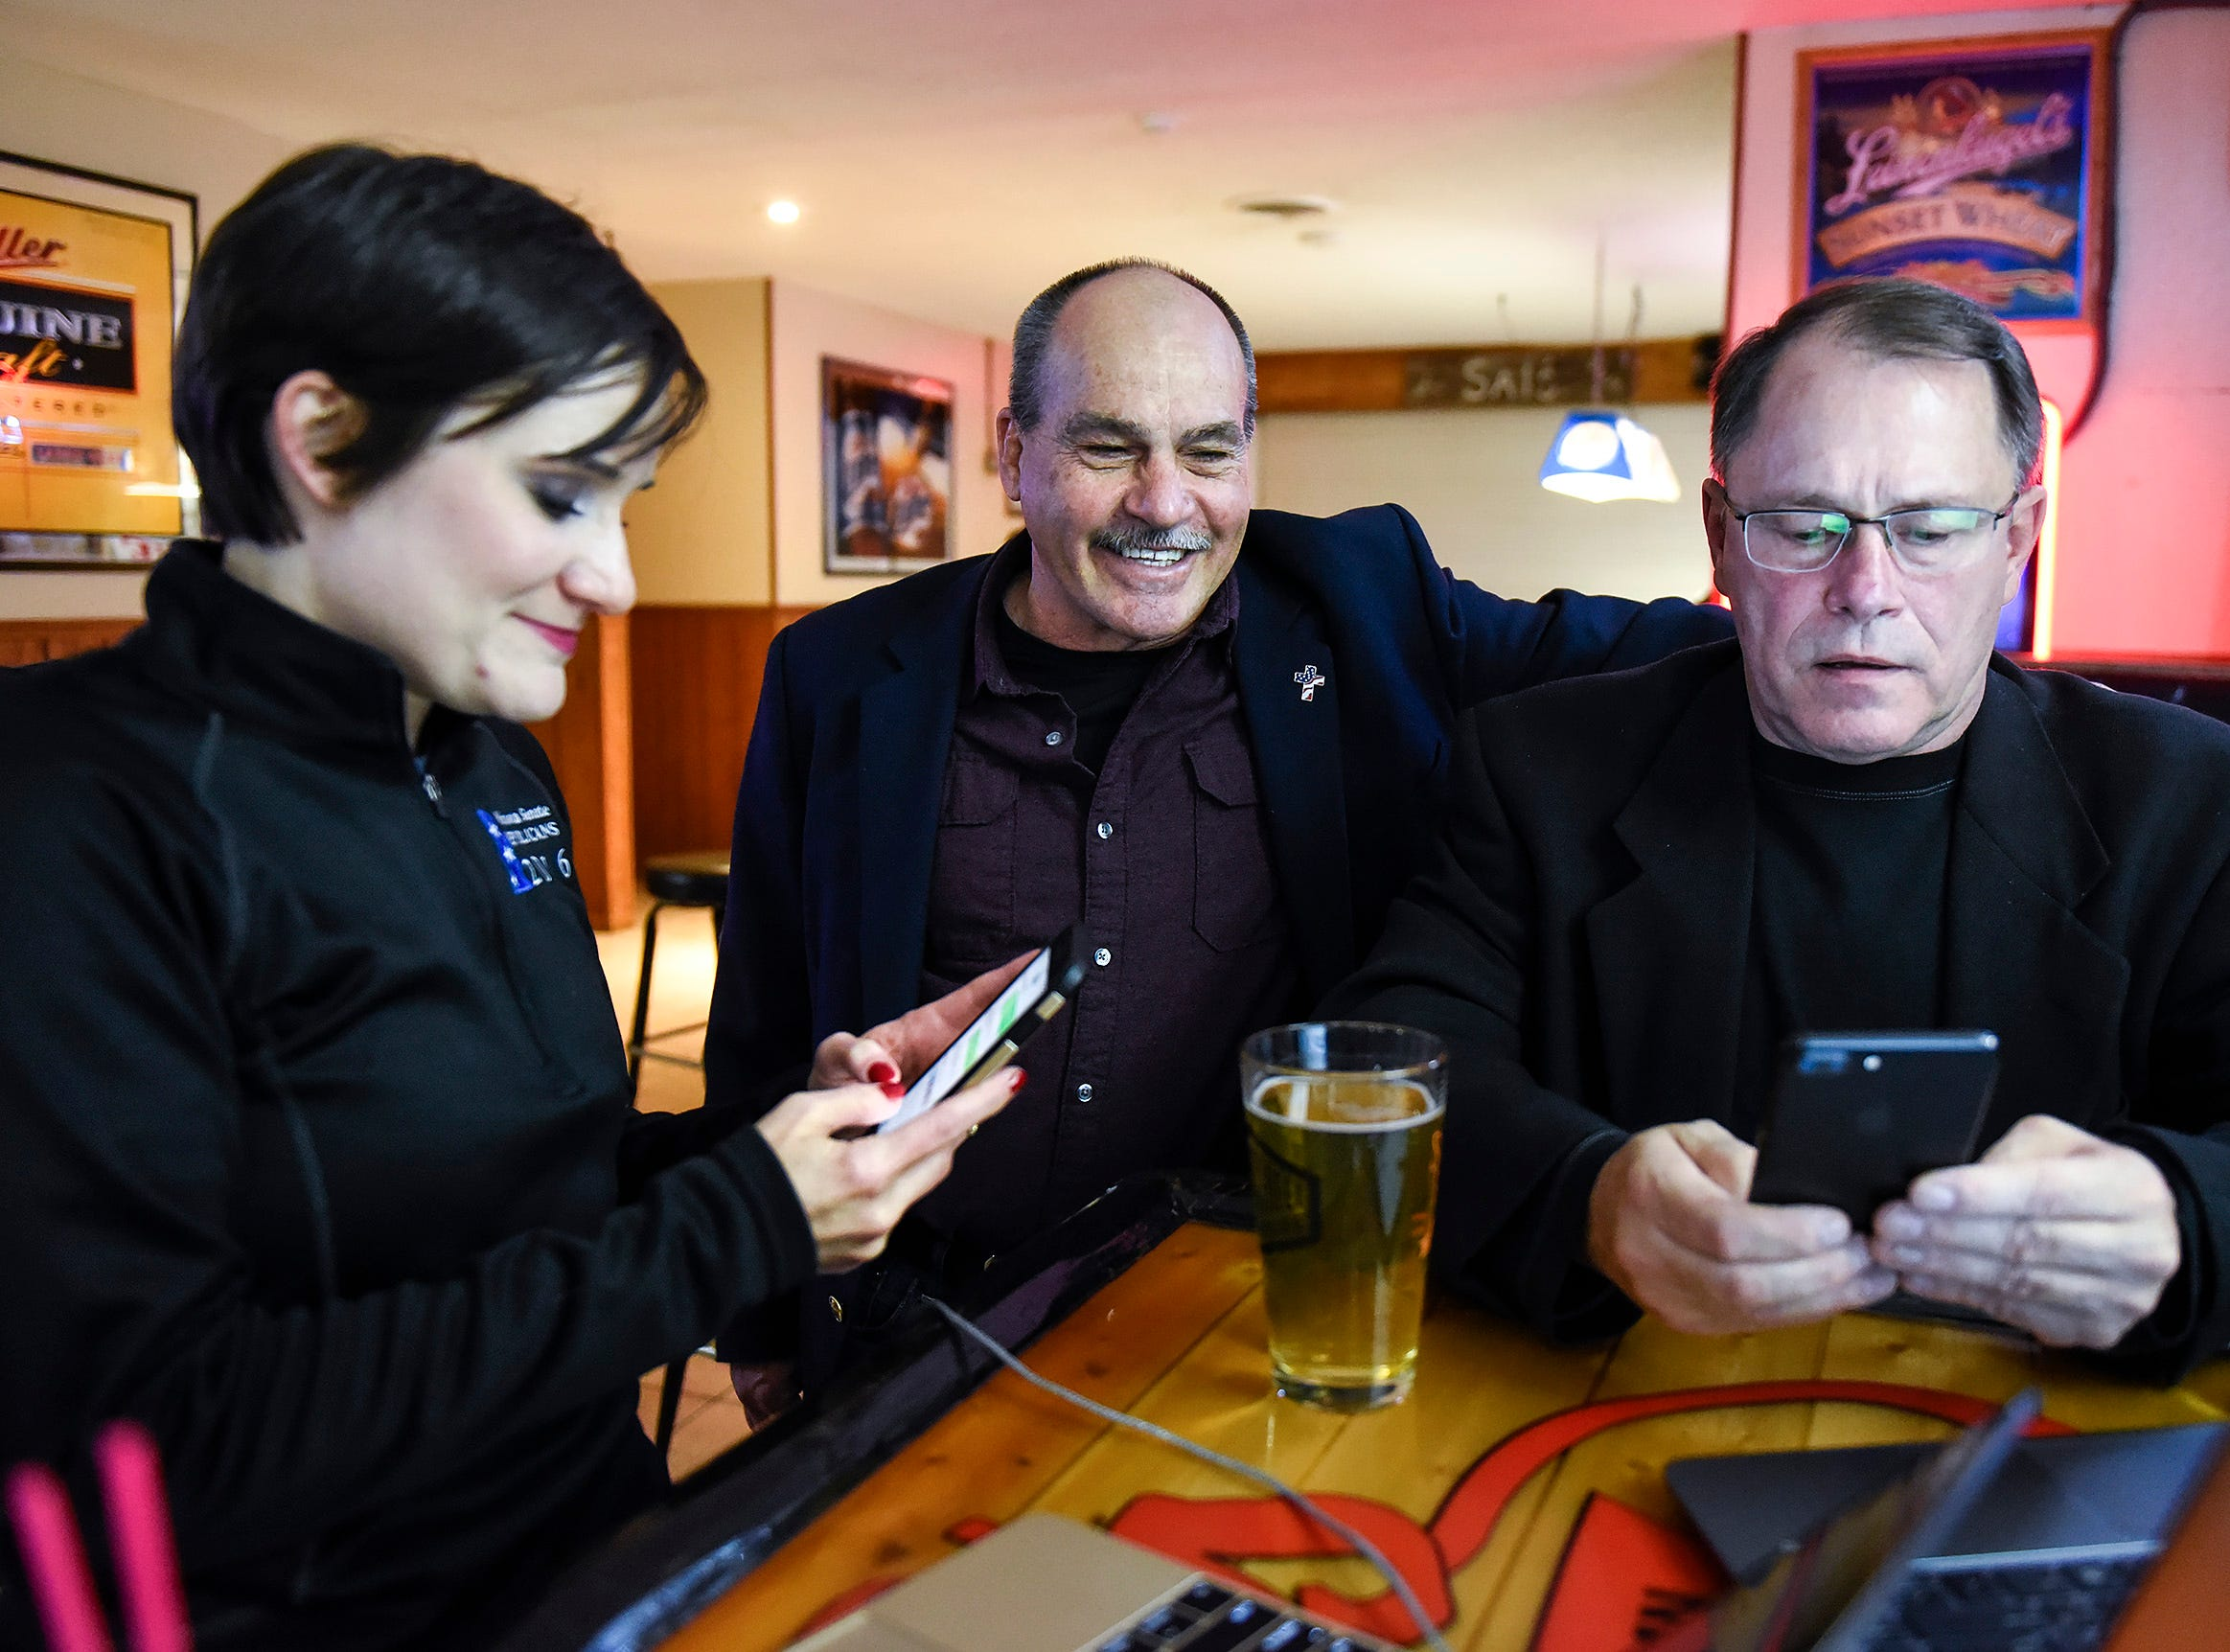 State Rep. Jeff Howe, center, watches the results of his State Senate race with Rachel Aplikowski and Mike Campbell Tuesday, Nov. 6, at Sal's Bar & Grill in St. Joseph.